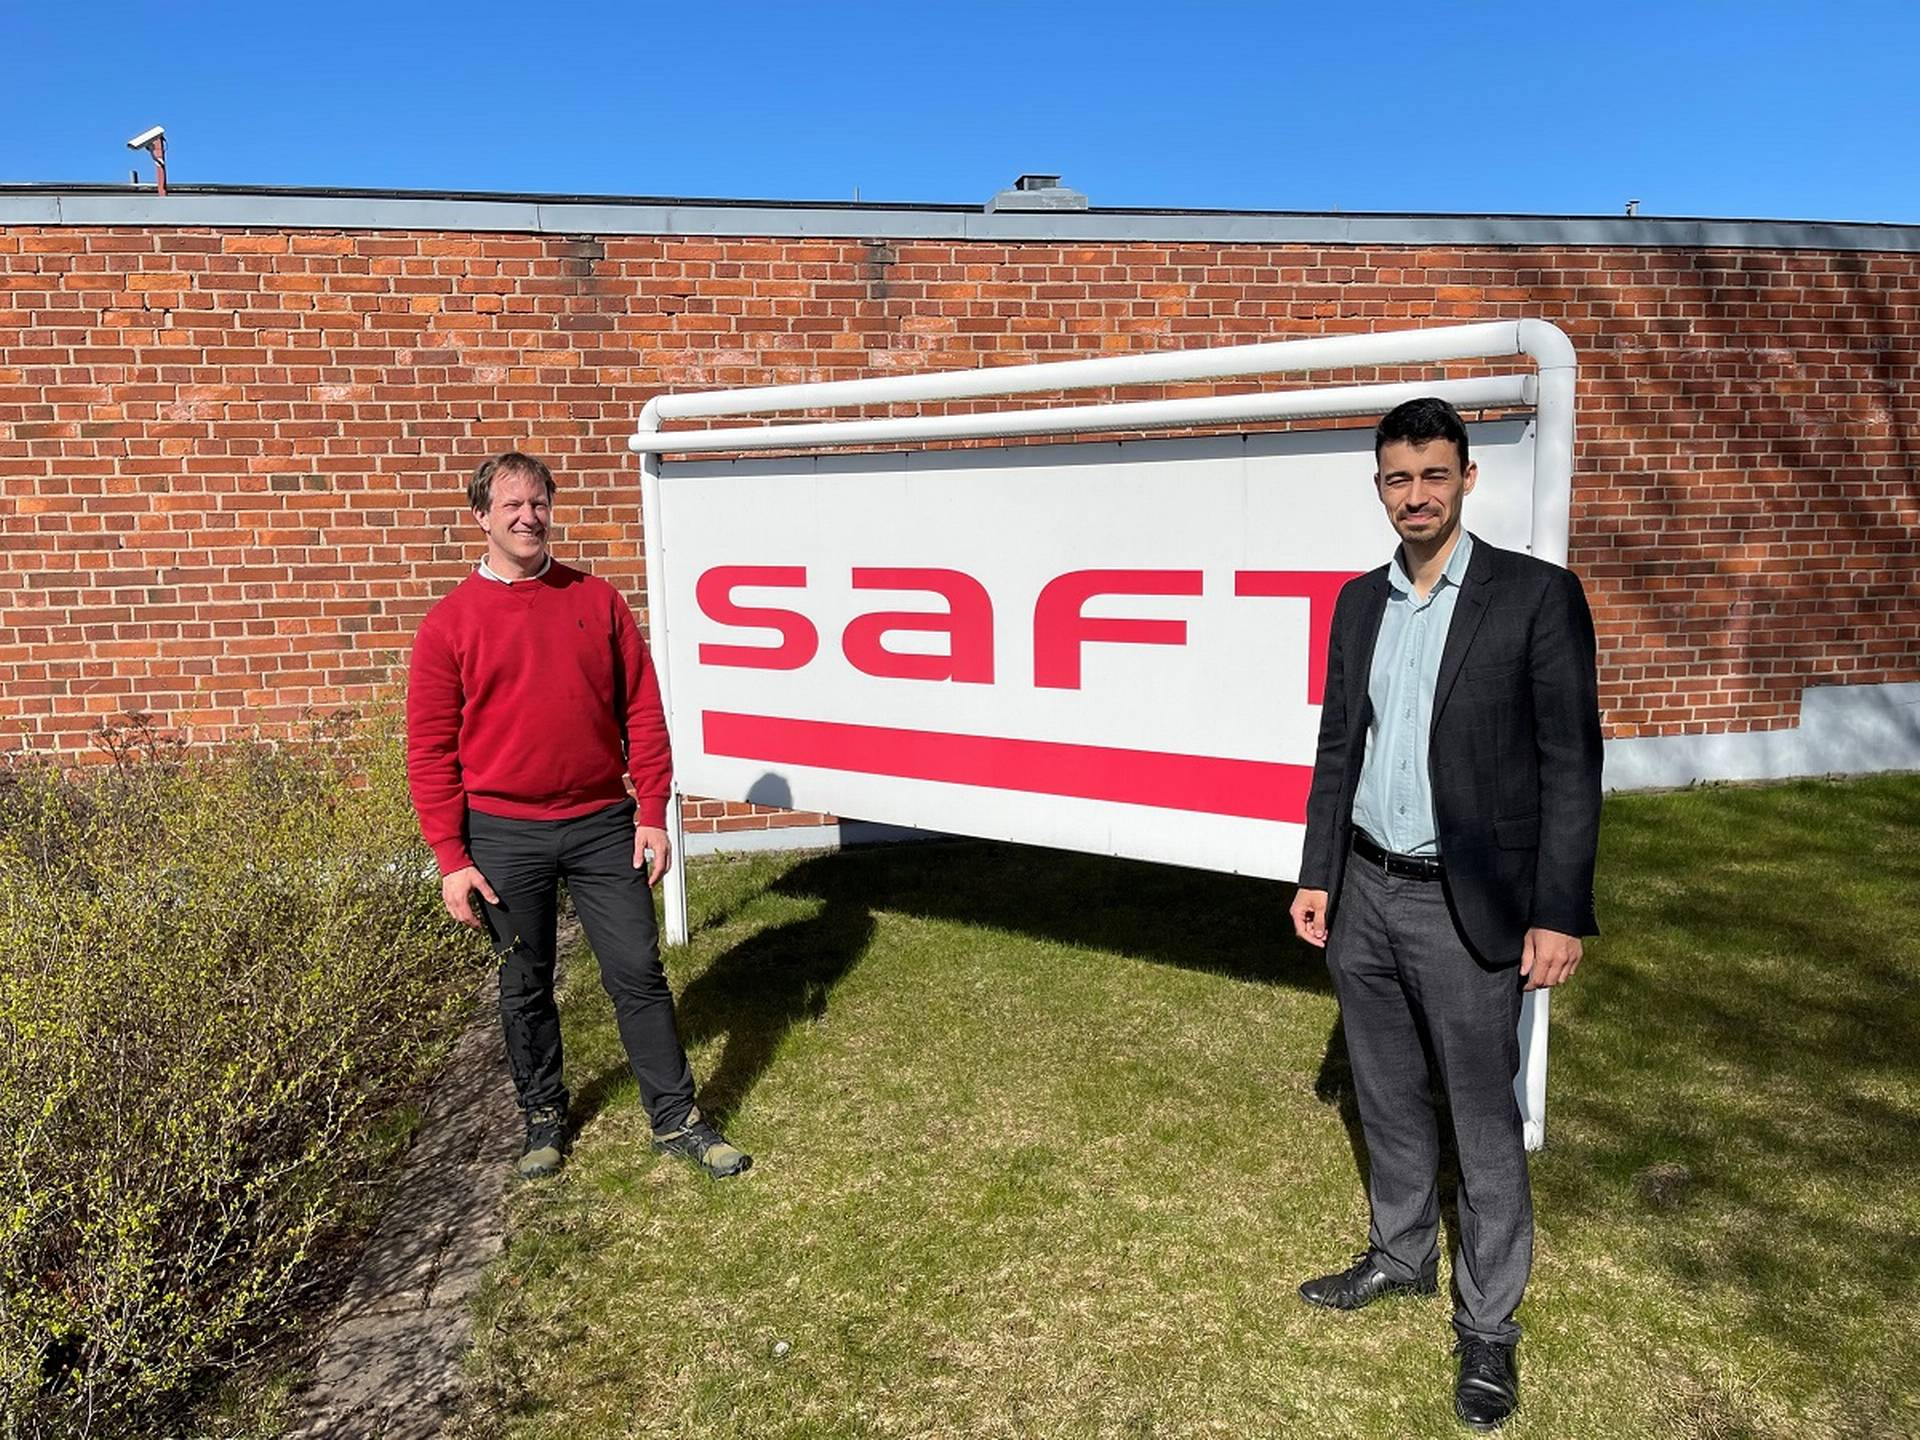 Saft launches future battery monitoring